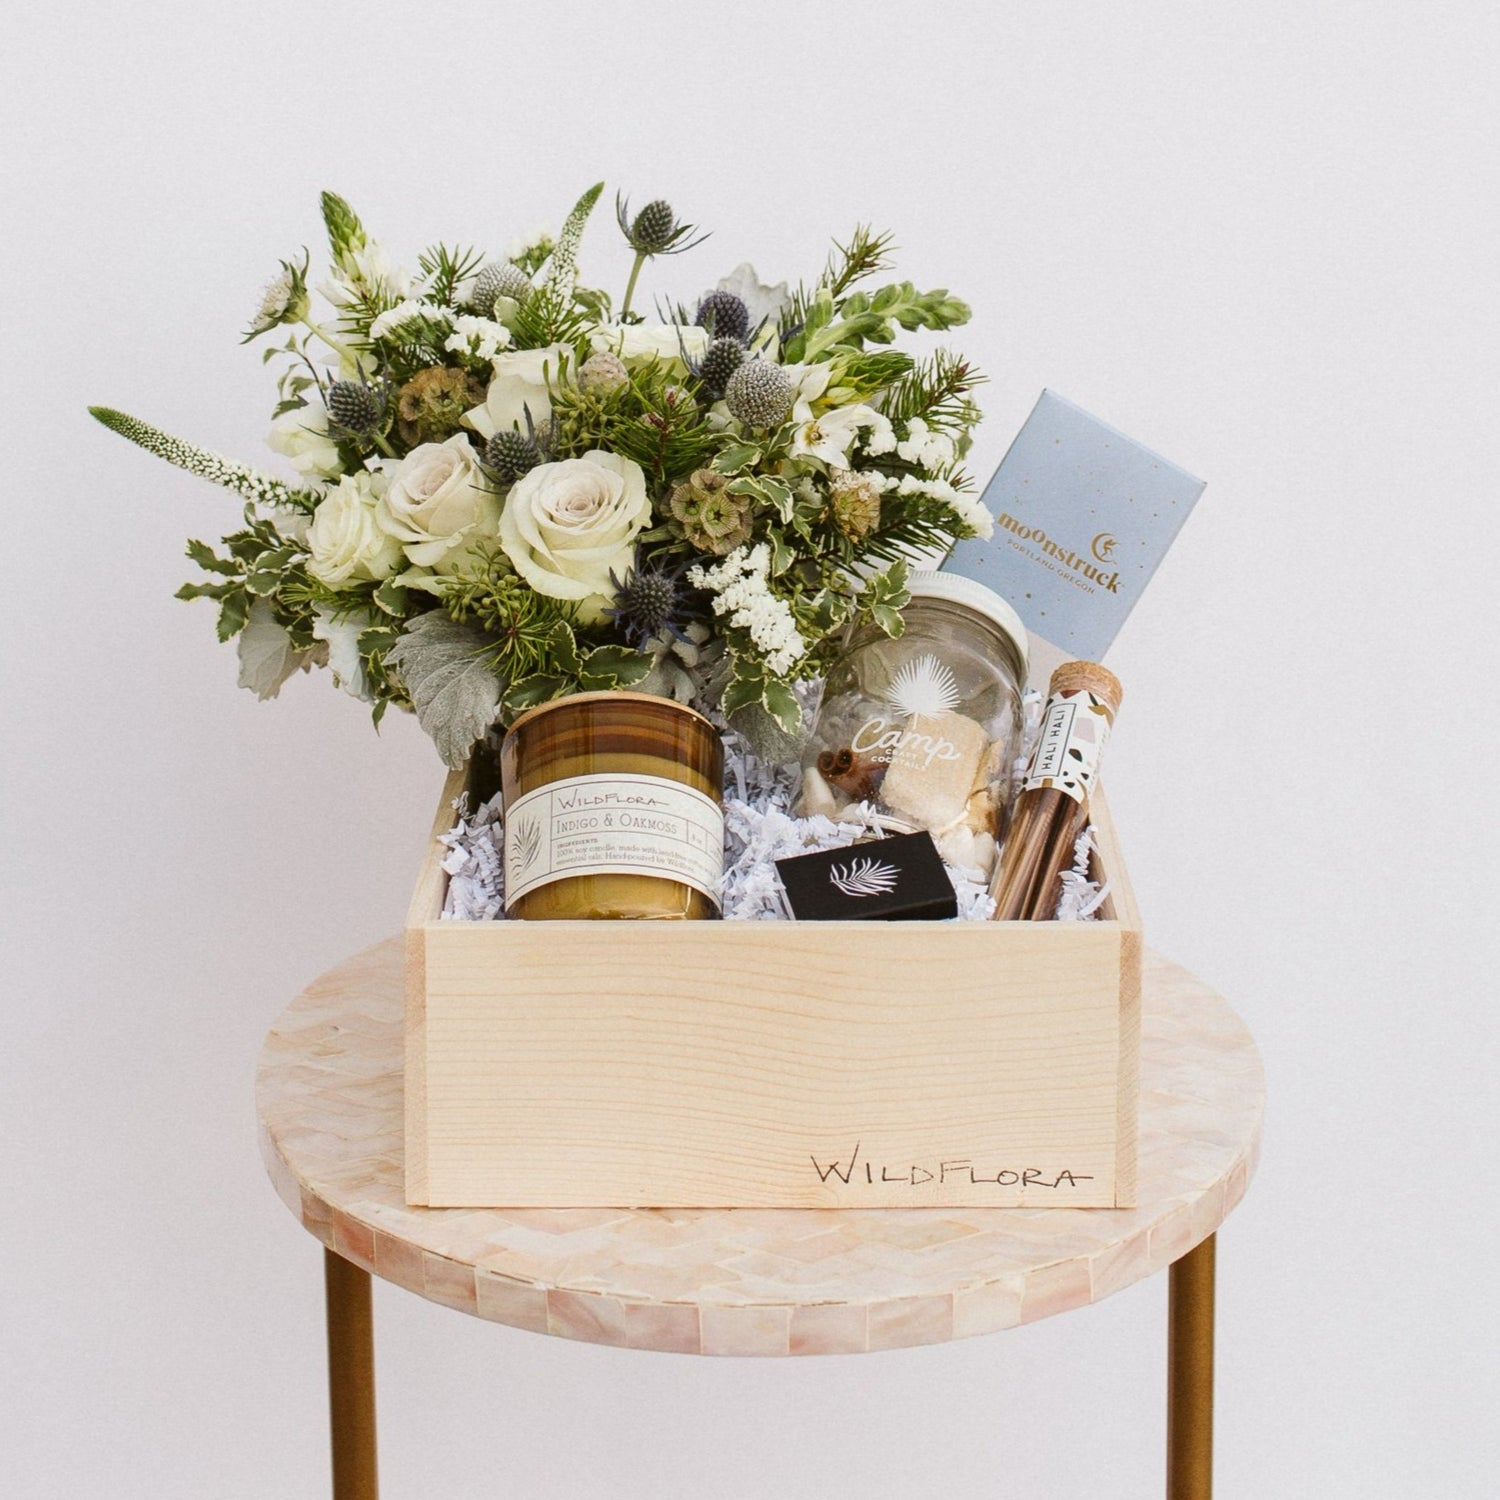 Cozy Corners Gift Box